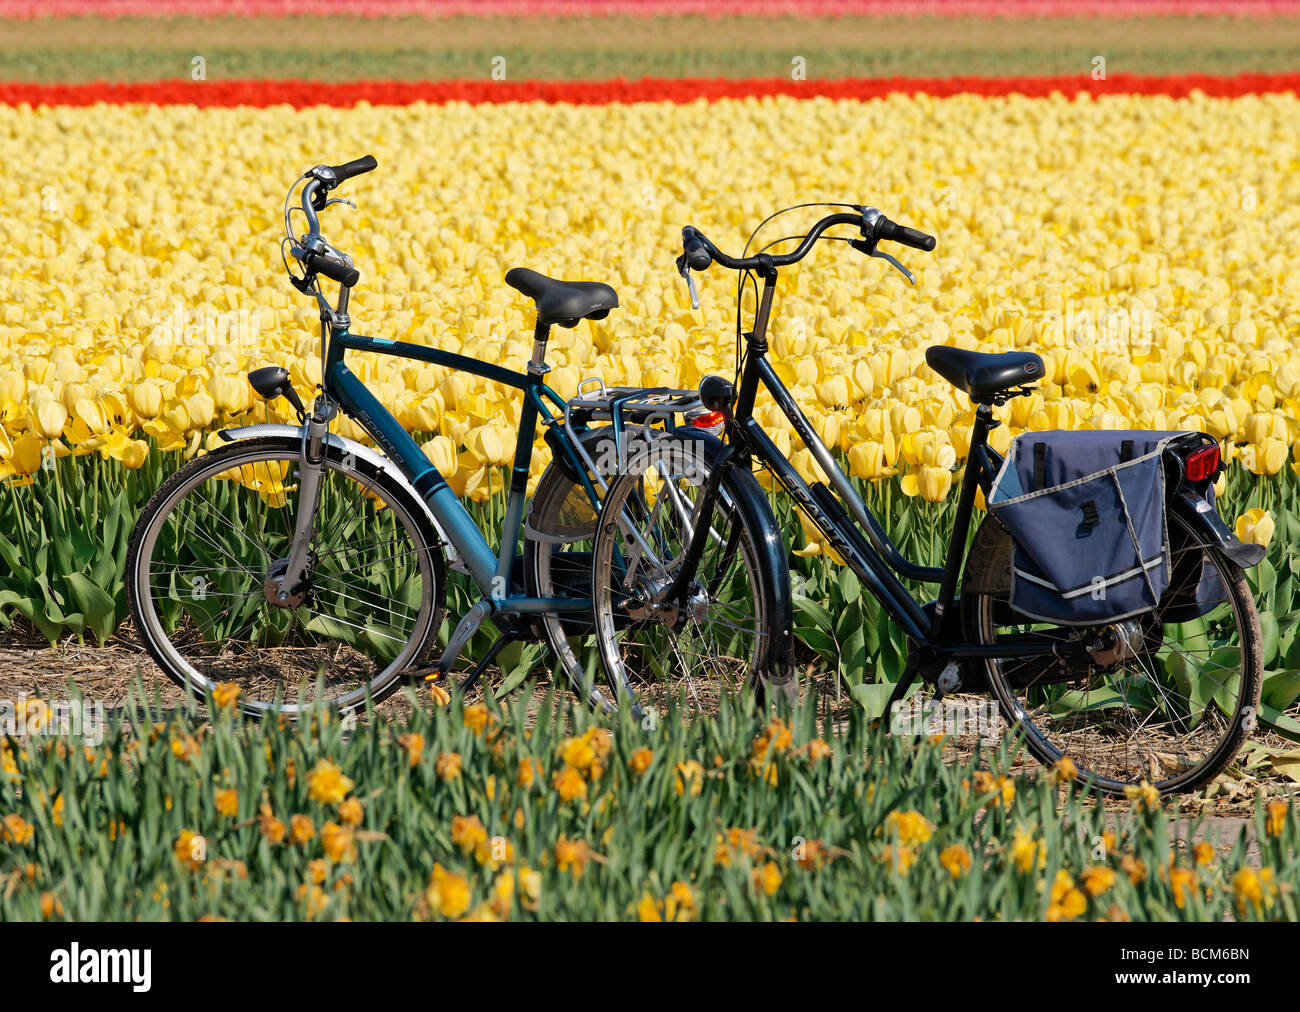 Two bicycles in the tulip fields of the Bollenstreek, South Holland, Netherlands - Stock Image